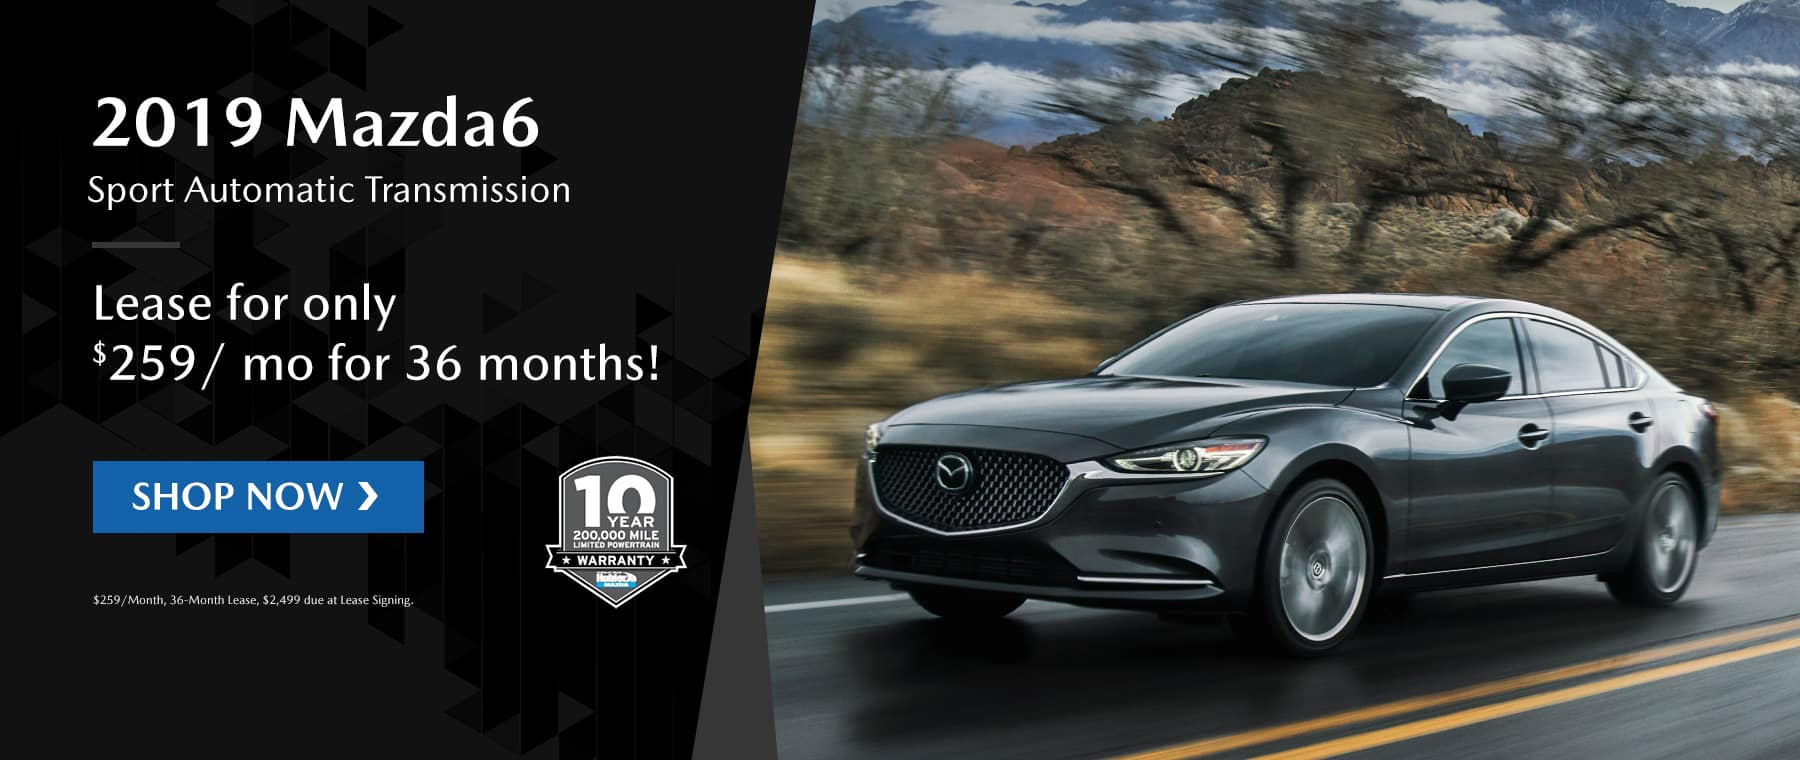 Mazda6 offers at Hubler Mazda